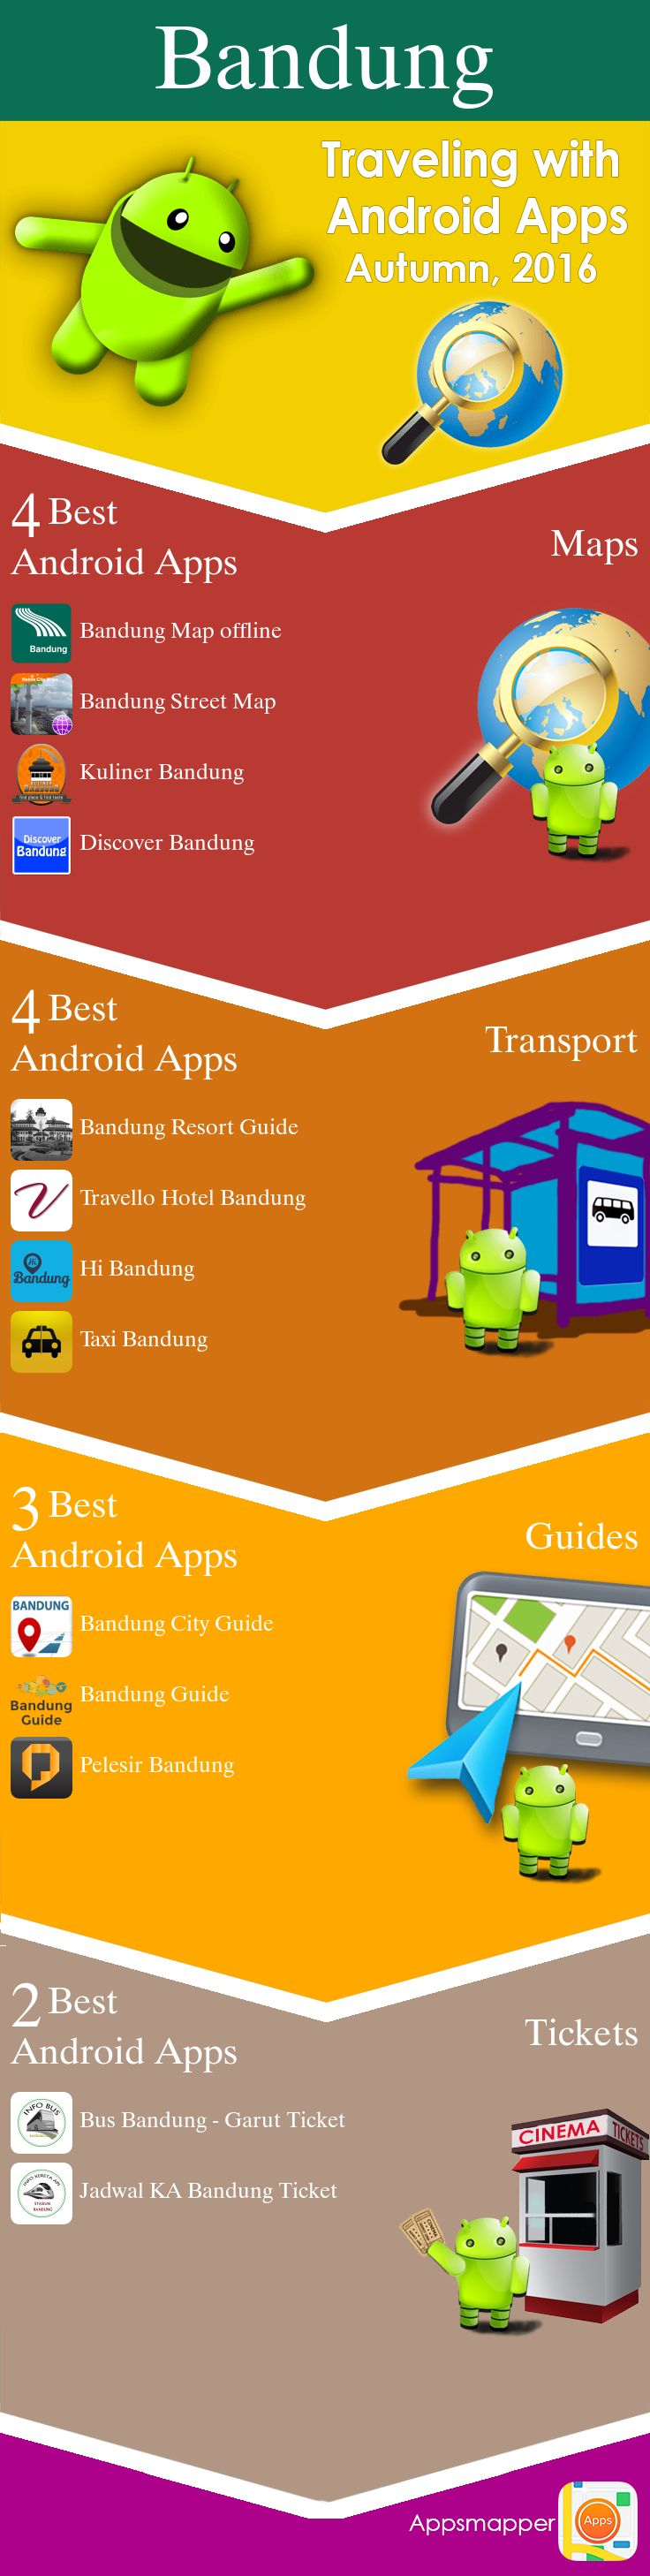 Bandung Android apps: Travel Guides, Maps, Transportation, Biking, Museums, Parking, Sport and apps for Students.